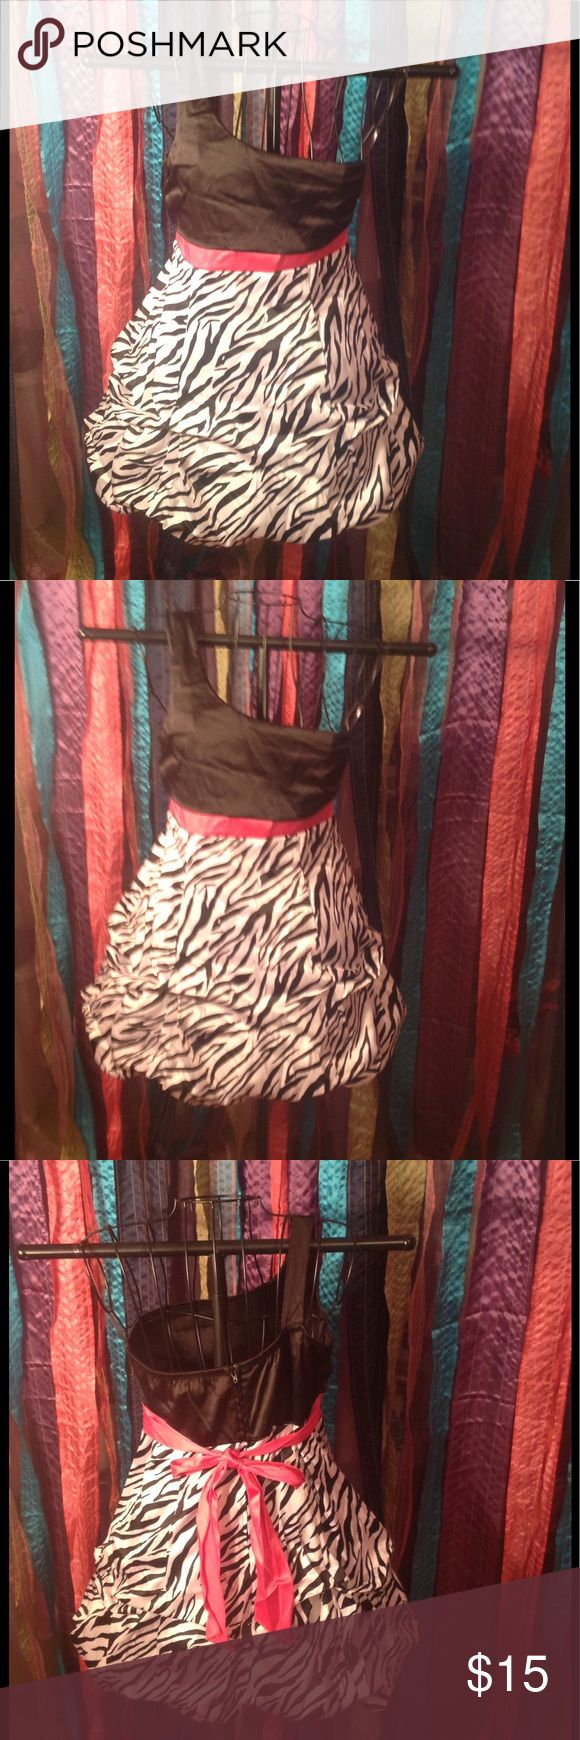 Satin Zebra Print Dress Satin ruffled dress with zebra Print skirt and black bodice with hot pink belt. From Belk. In excellent condition! Ruby Rox Dresses Formal